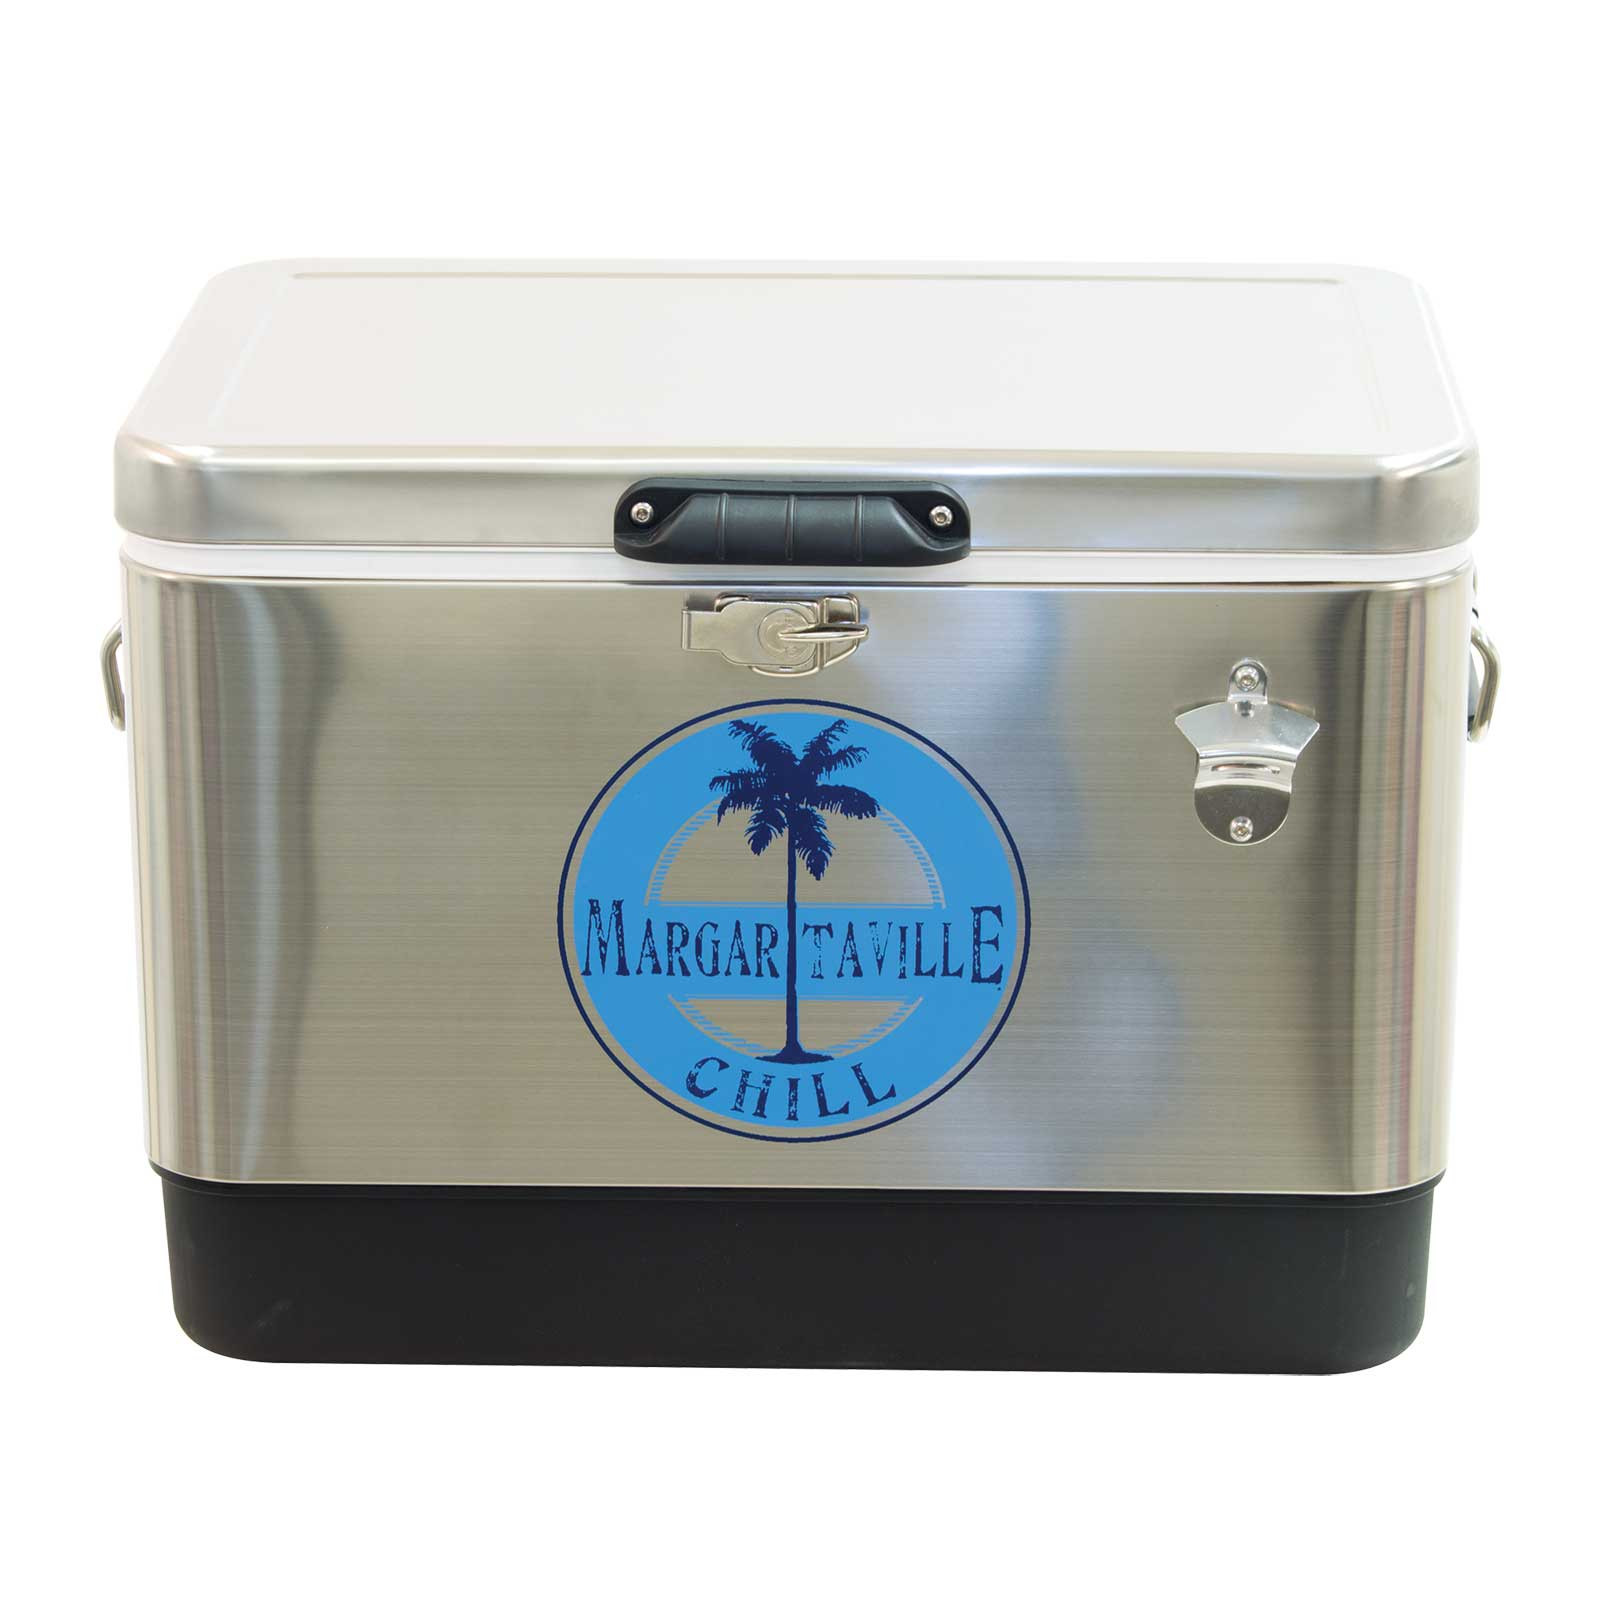 CHILL STAINLESS 54 QT COOLER